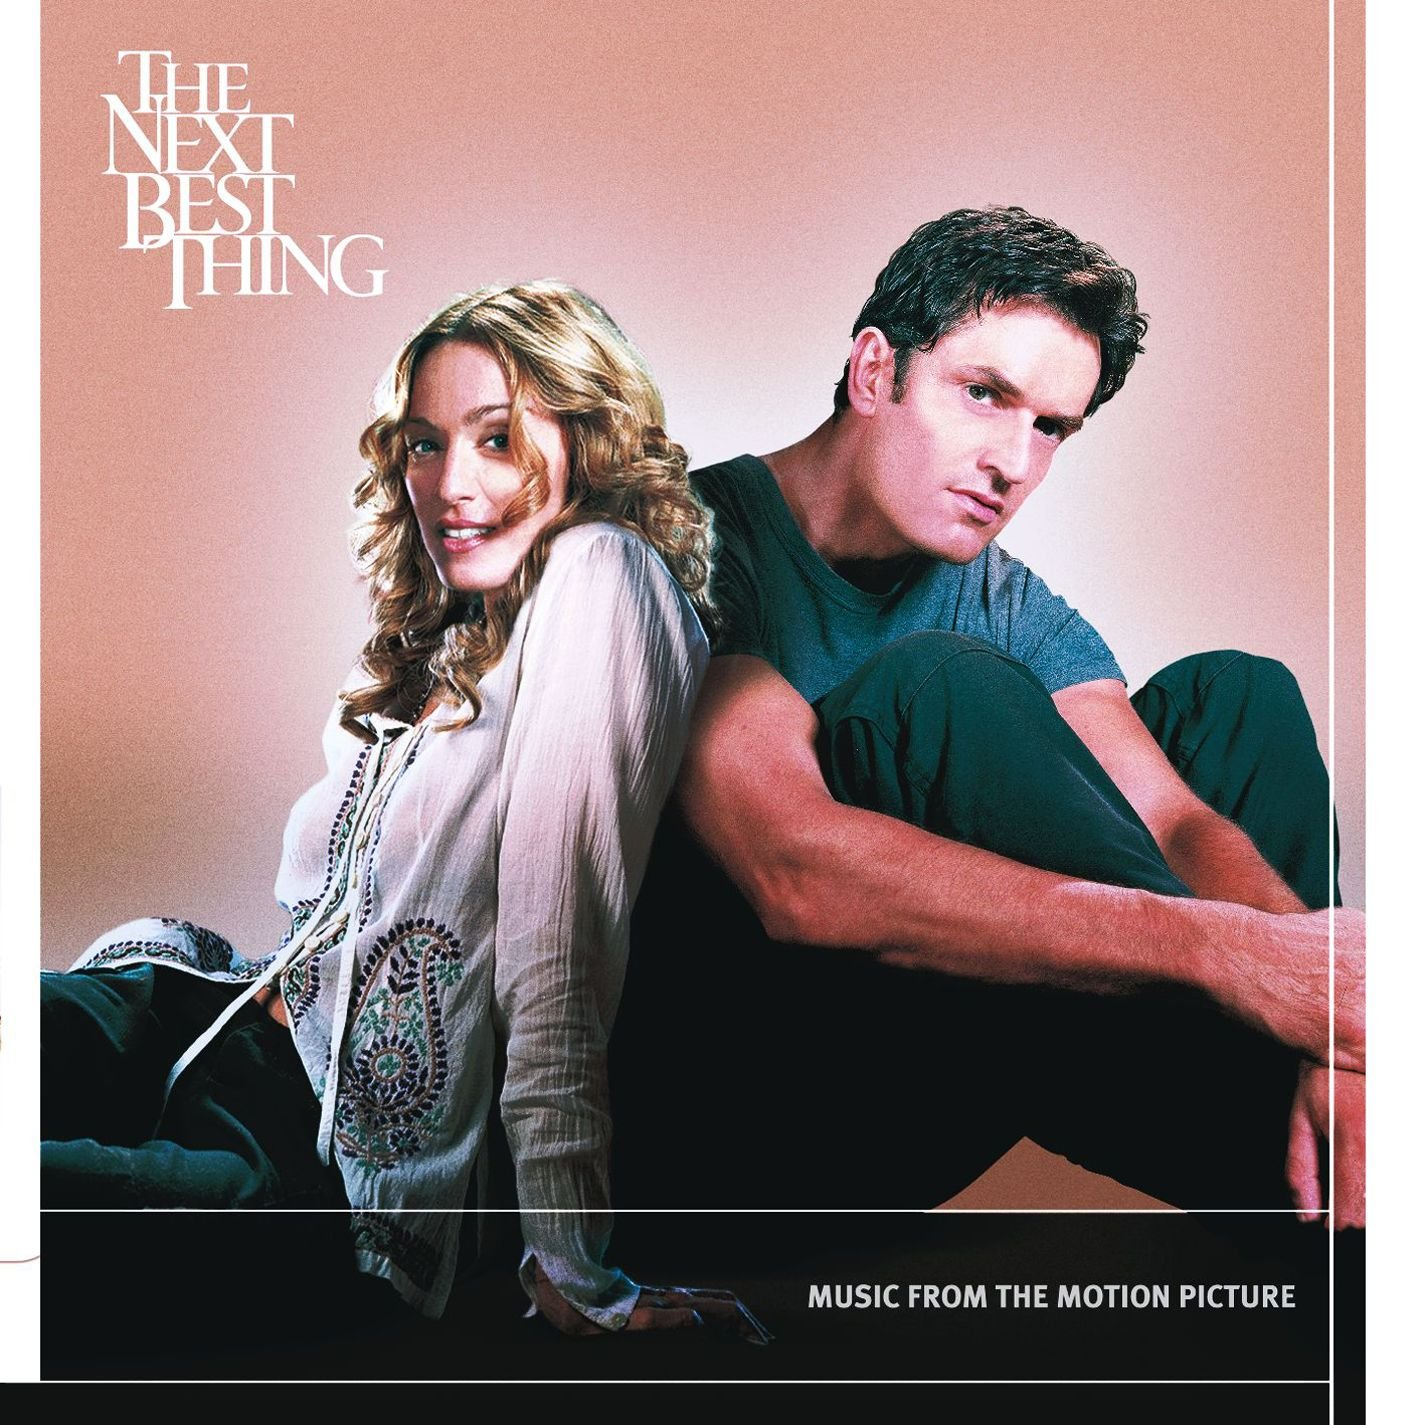 VA – The Next Best Thing Music From the Motion Picture (2000) [FLAC]